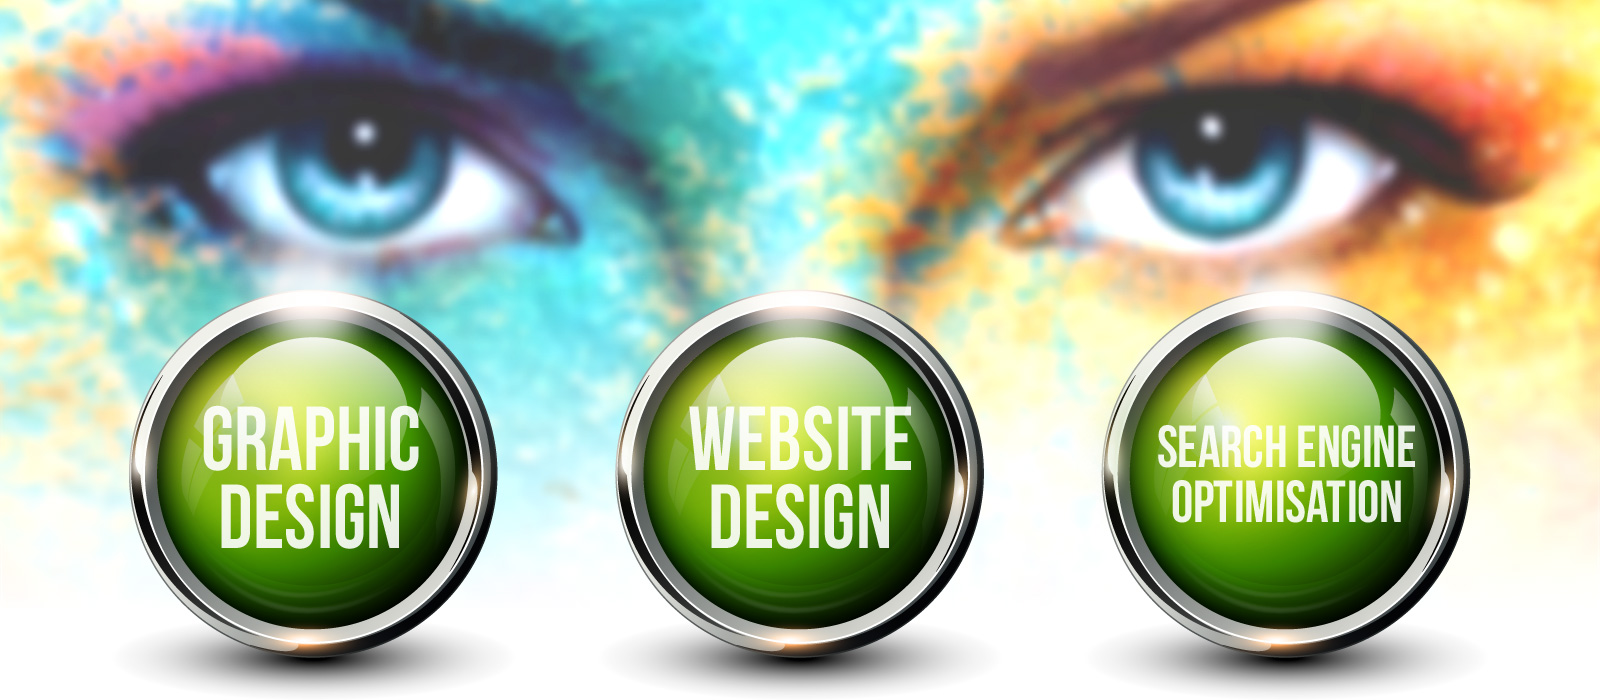 Website design, Graphic Design & SEO